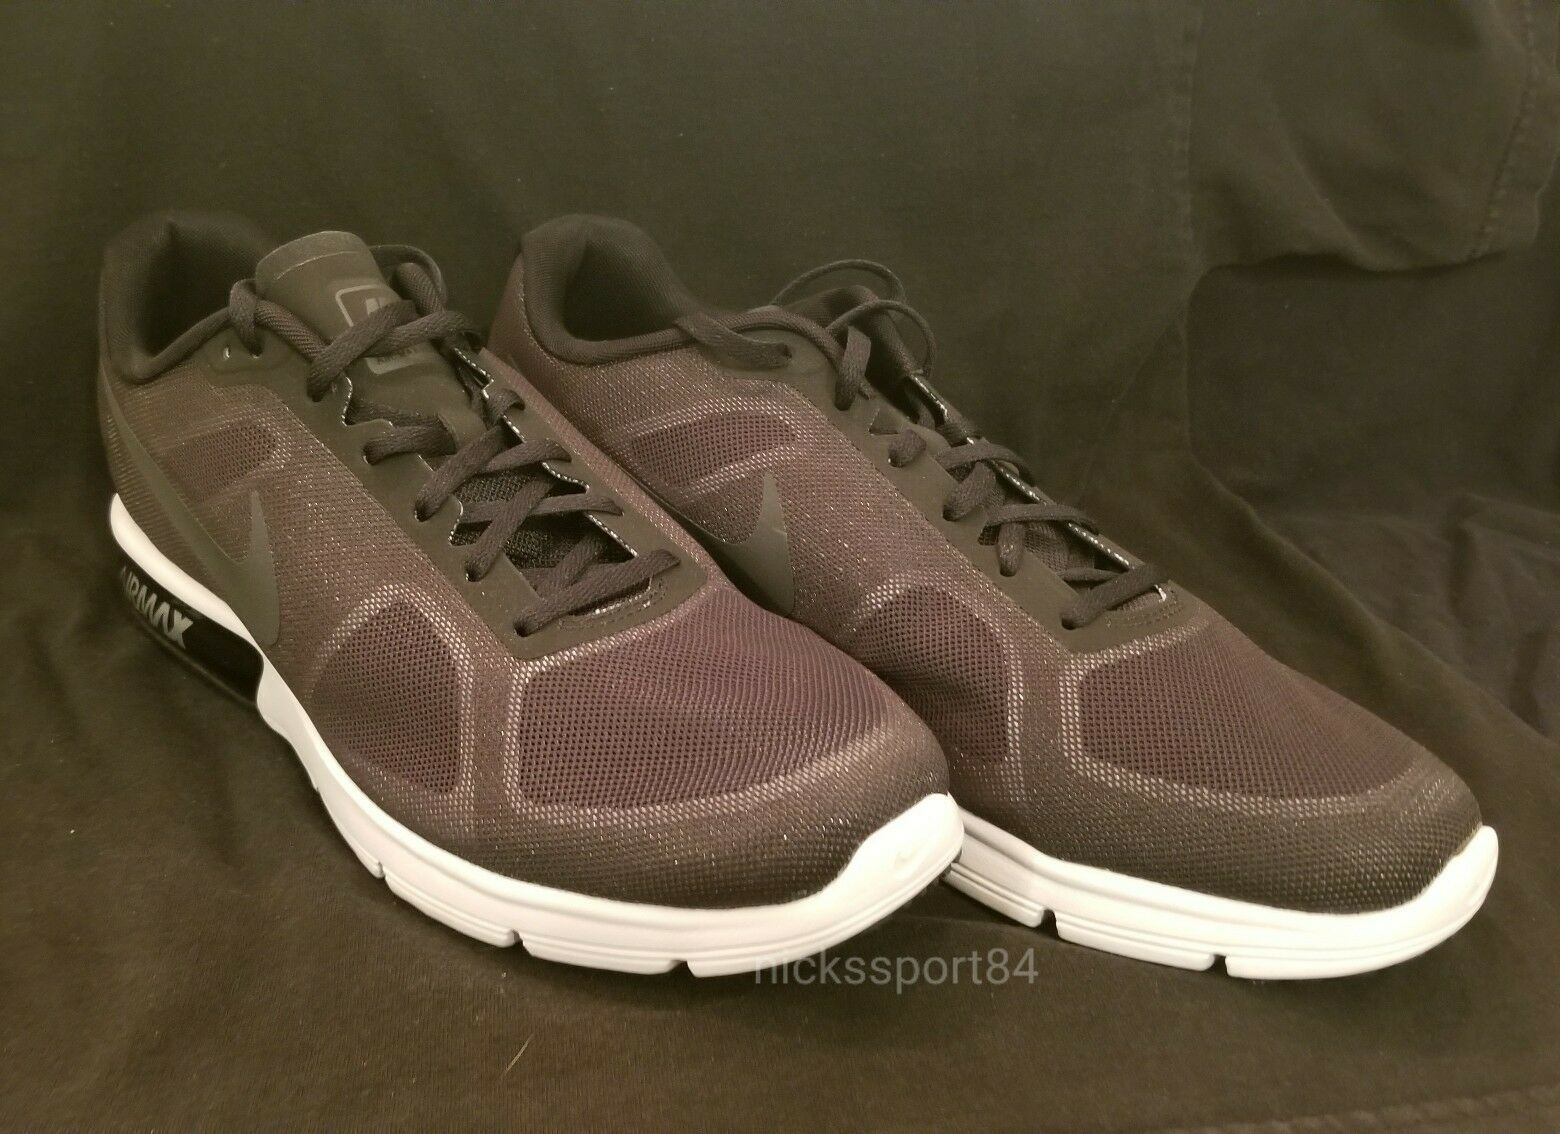 Nike Air Max Sequent Mens Size 11.5